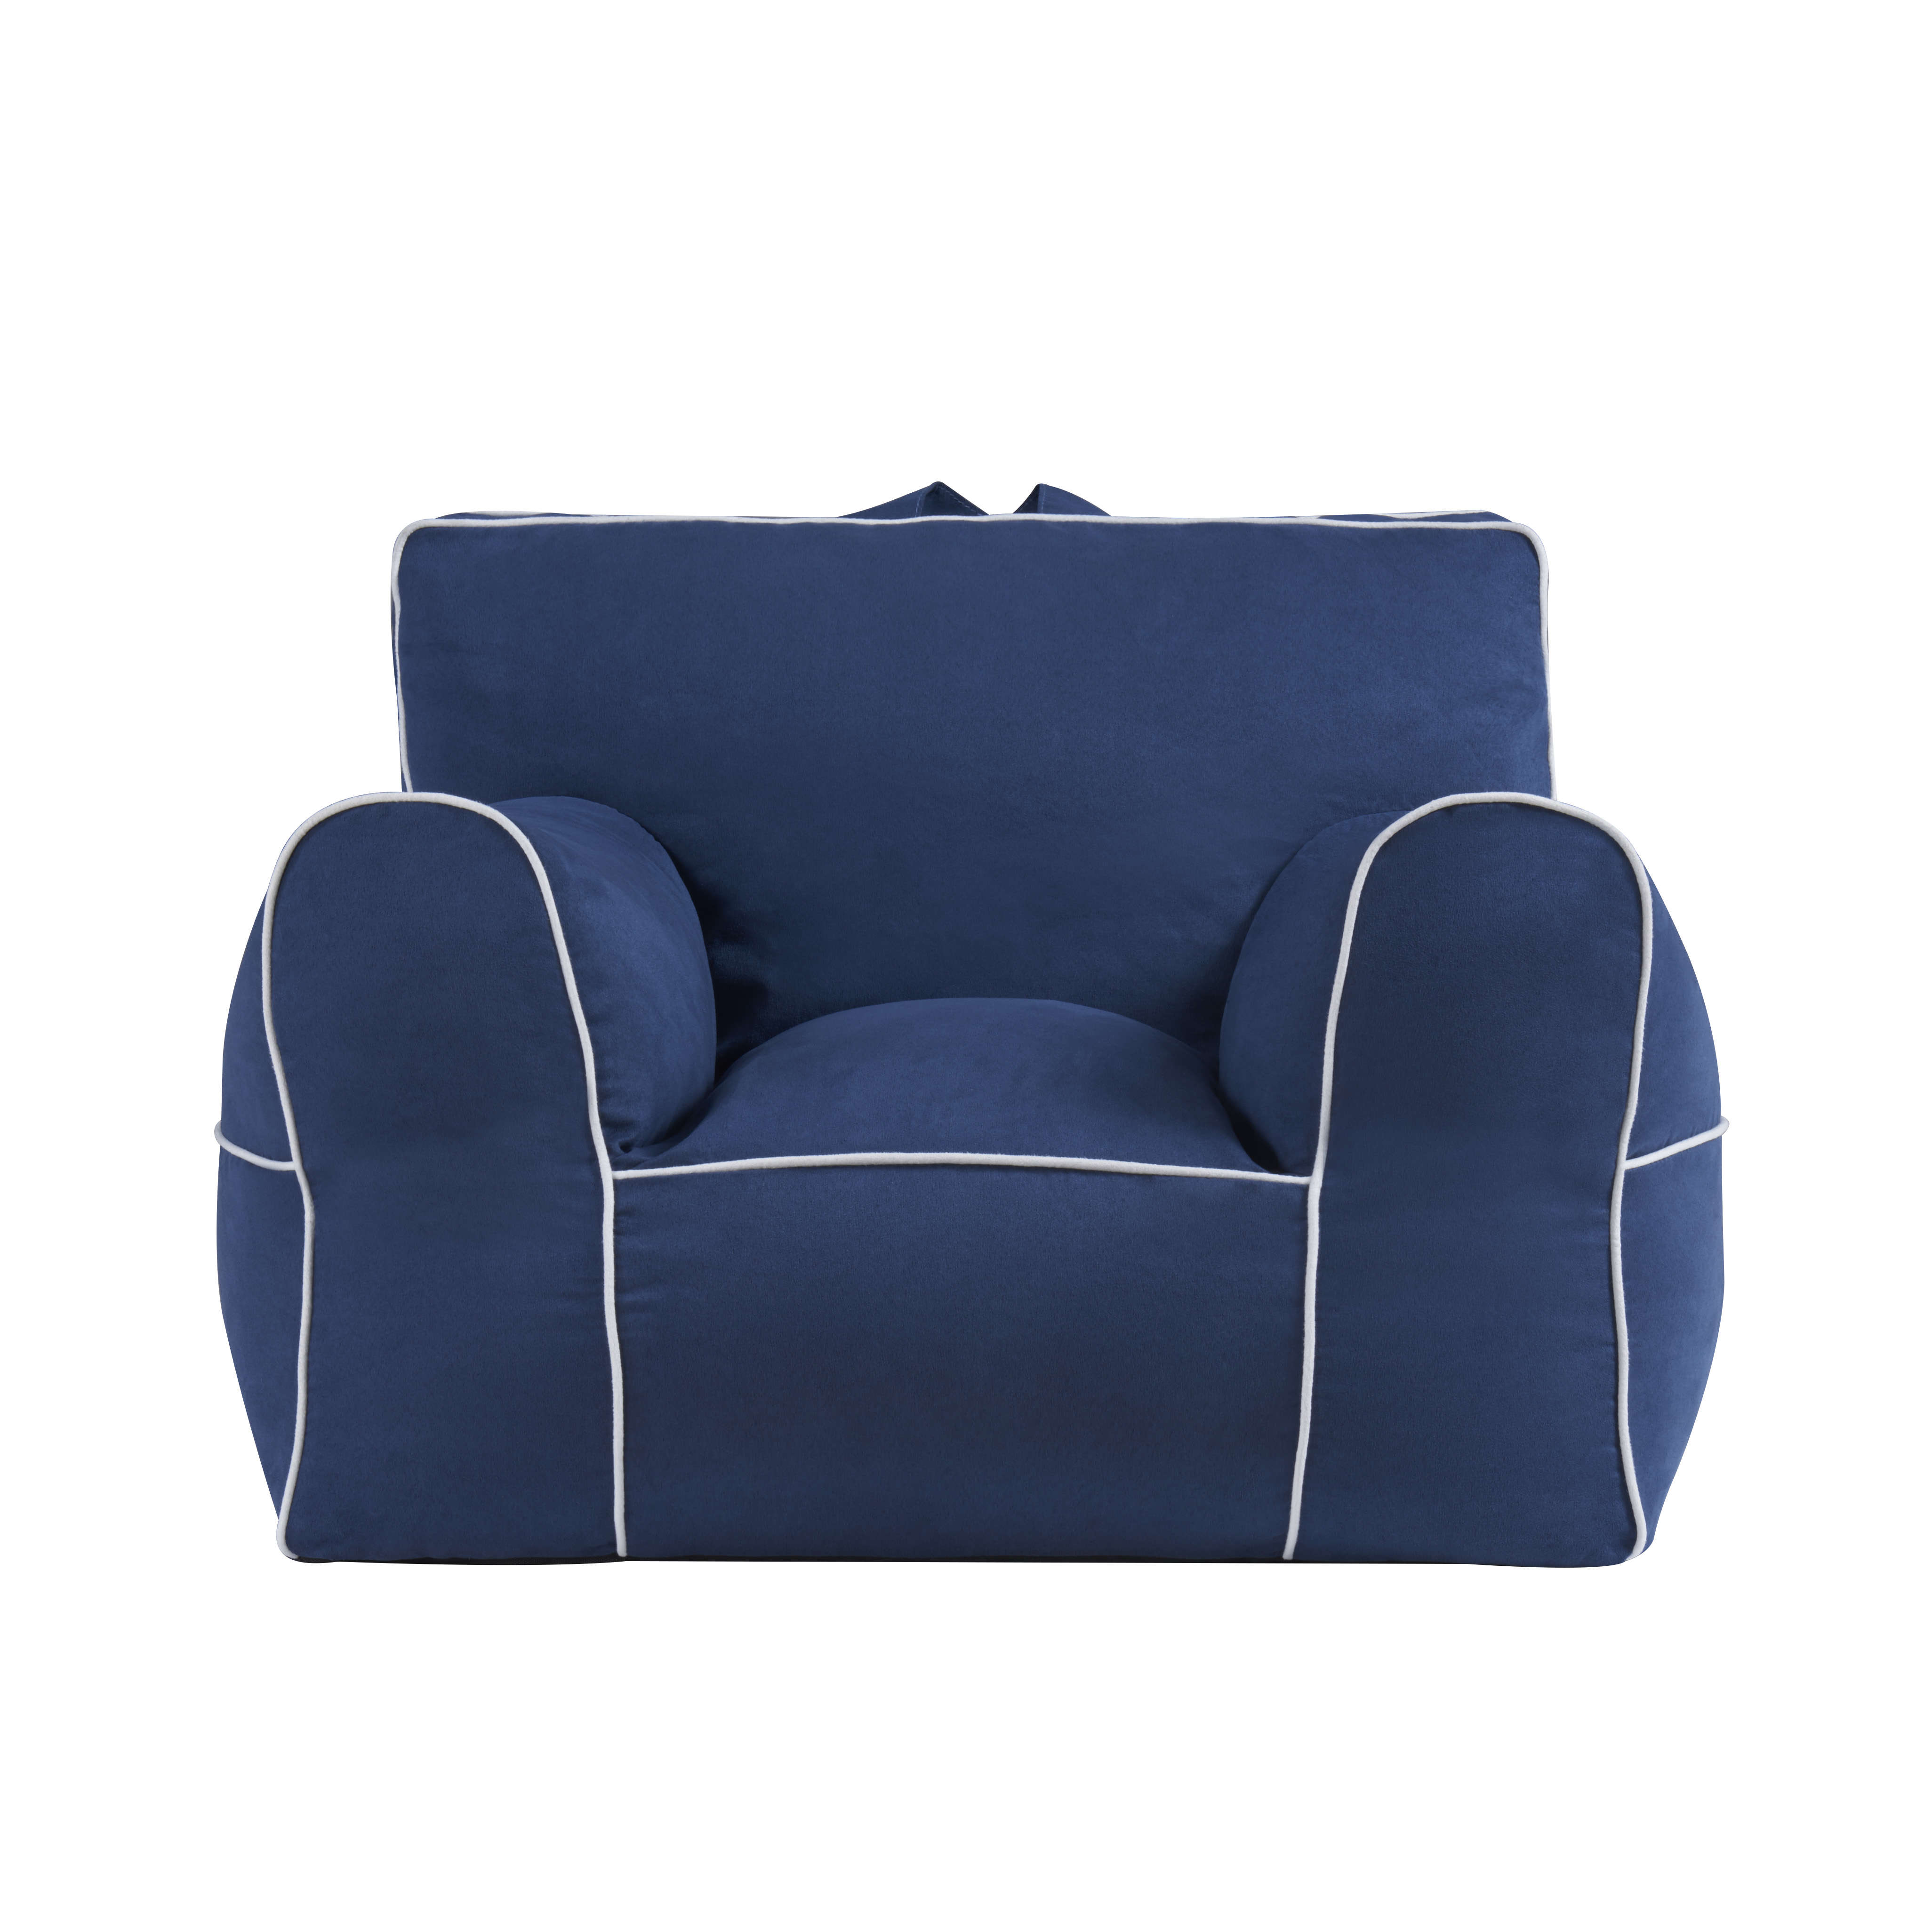 Swell Mainstays Microfiber Large Bean Bag Chair Multiple Colors Alphanode Cool Chair Designs And Ideas Alphanodeonline